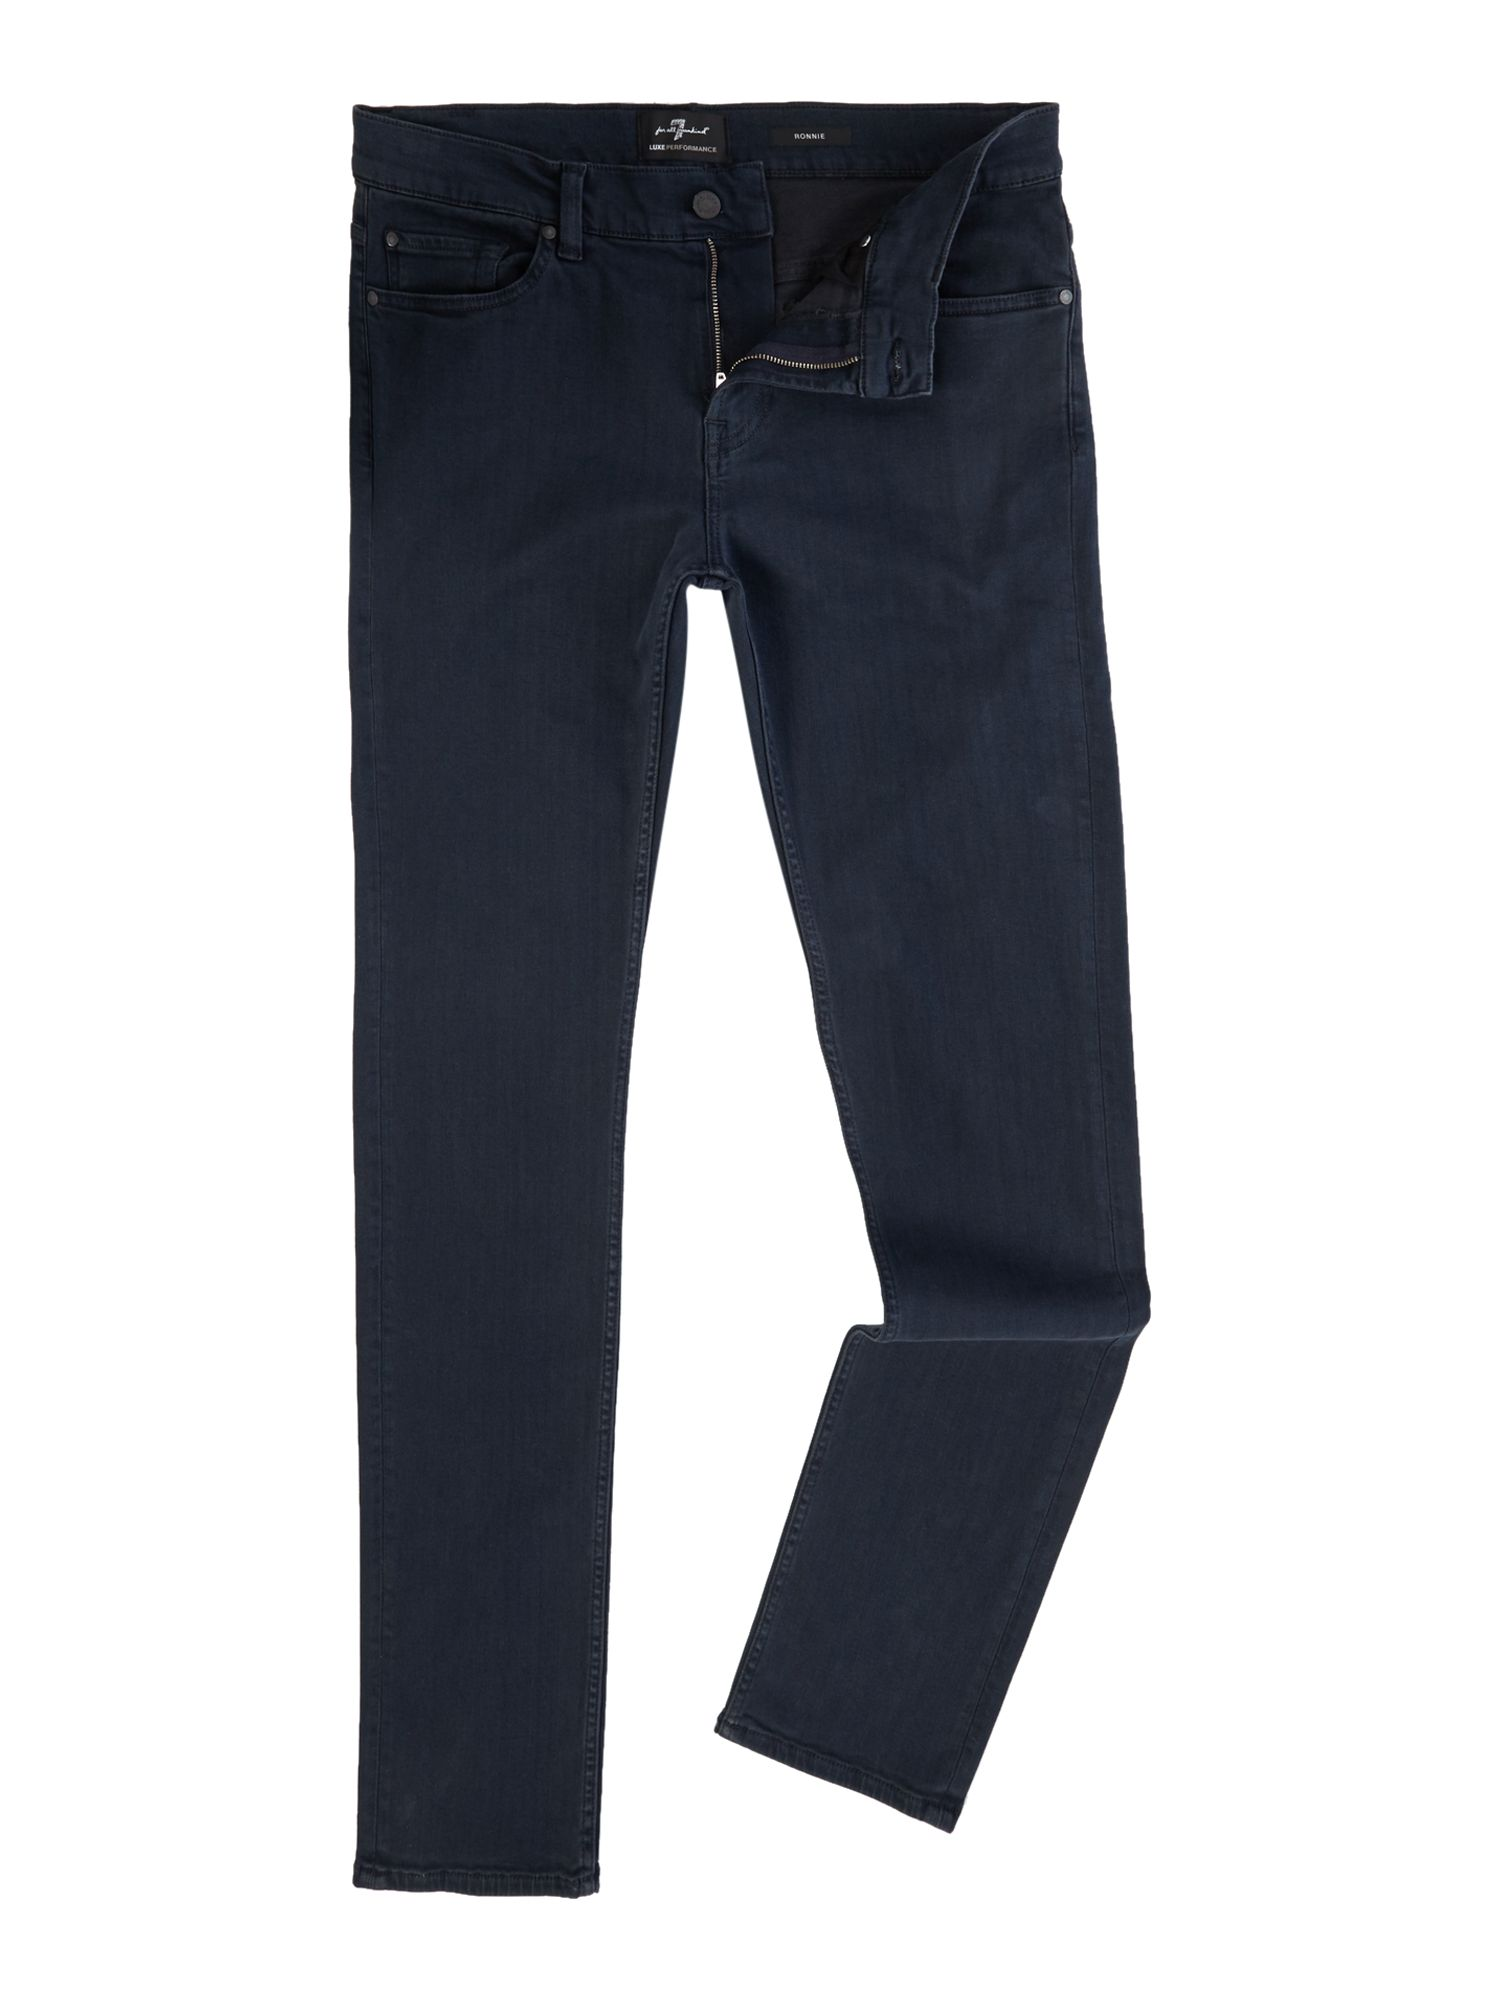 Mens Skinny Fit Ronnie Luxe Performance Jeans, Deep Blue